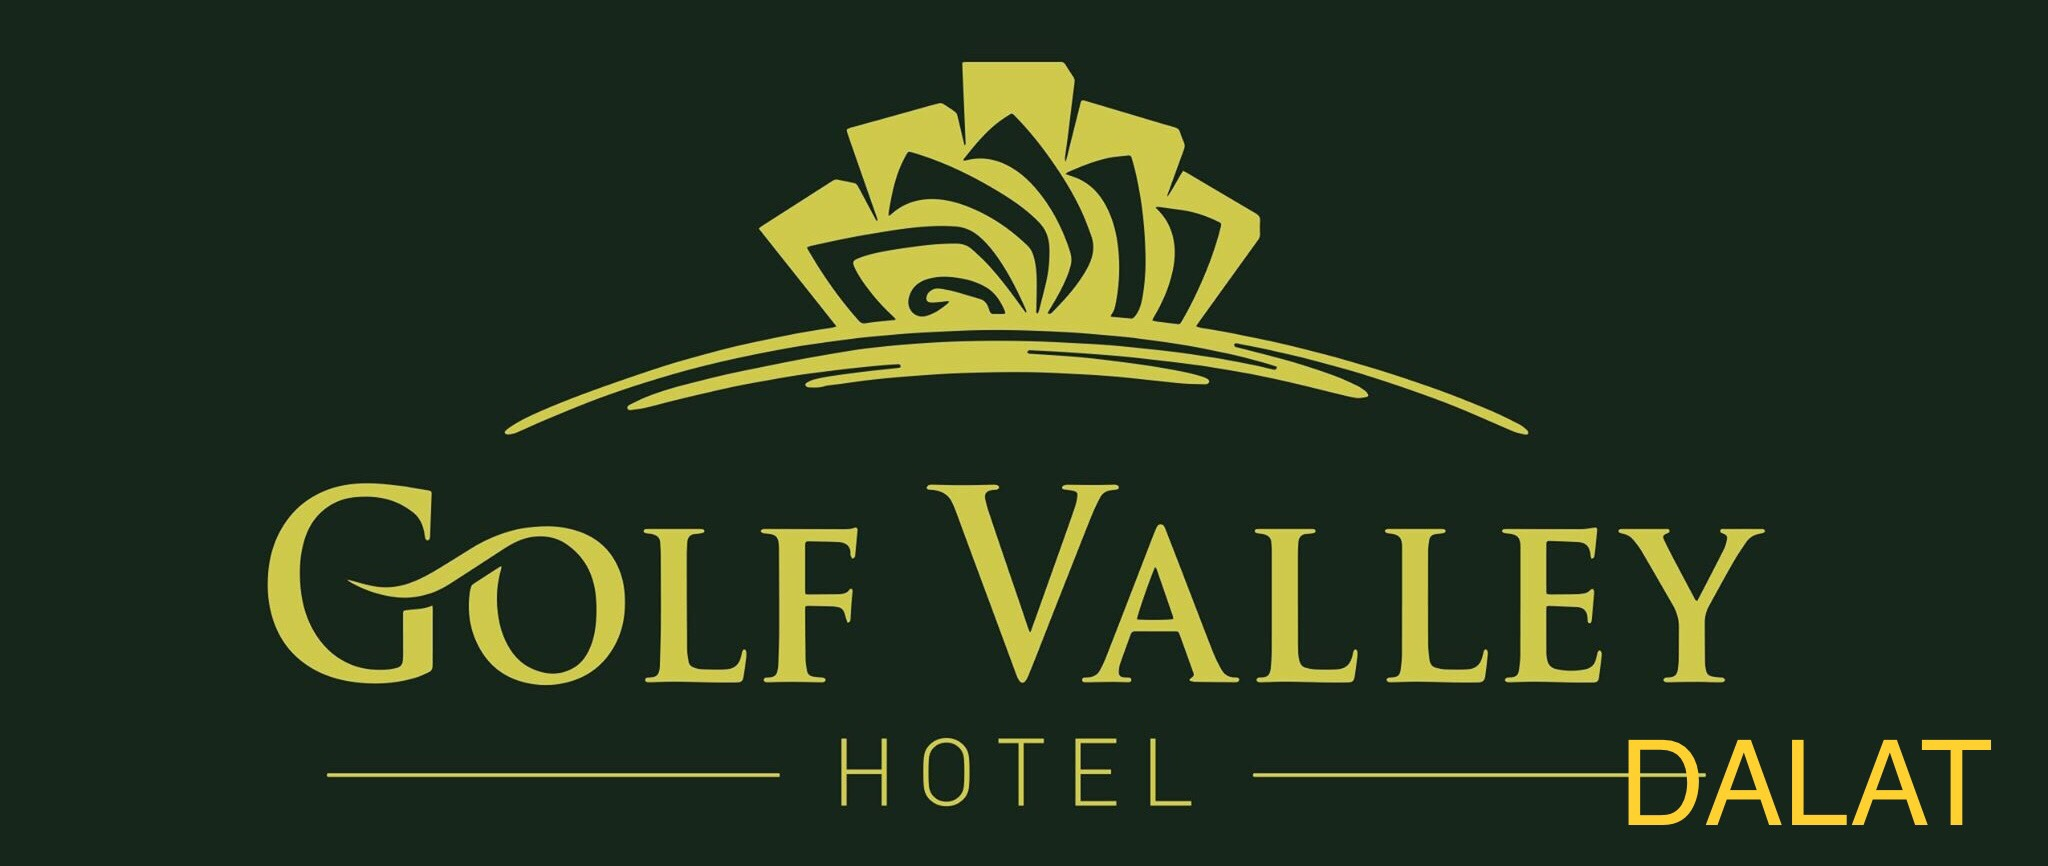 Golf Valley DaLat